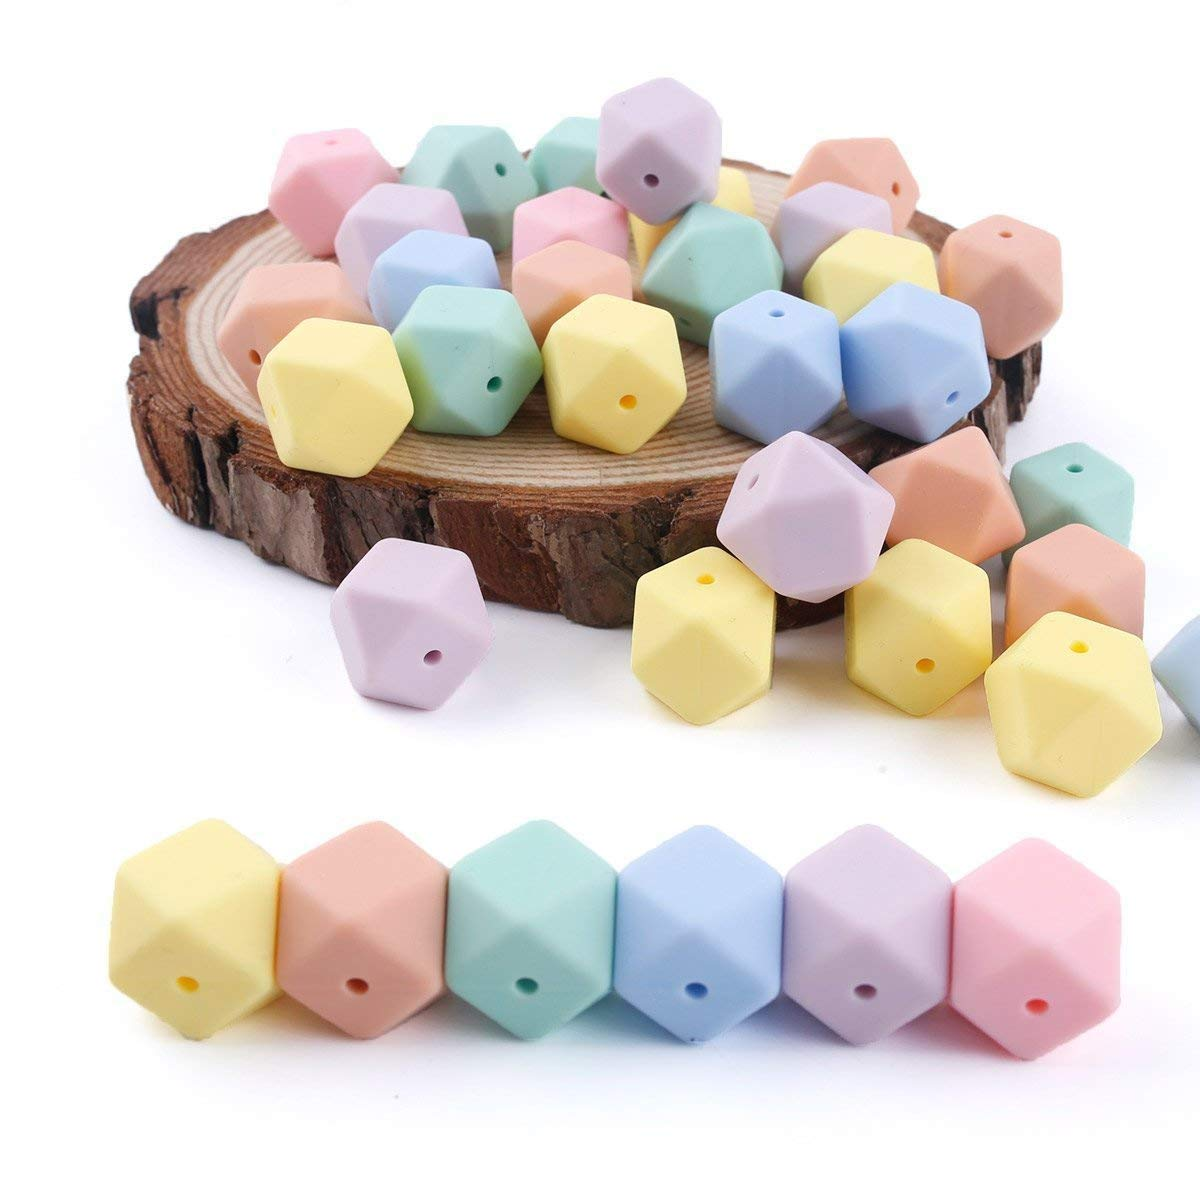 DIY Necklace/ Bracelet Bbaby Teething Silicone Beads DIY Beads for Teether Mix Color 50pcs 17mm(0.67in) Hexagon Chewy Beads HAO JIE J-E218